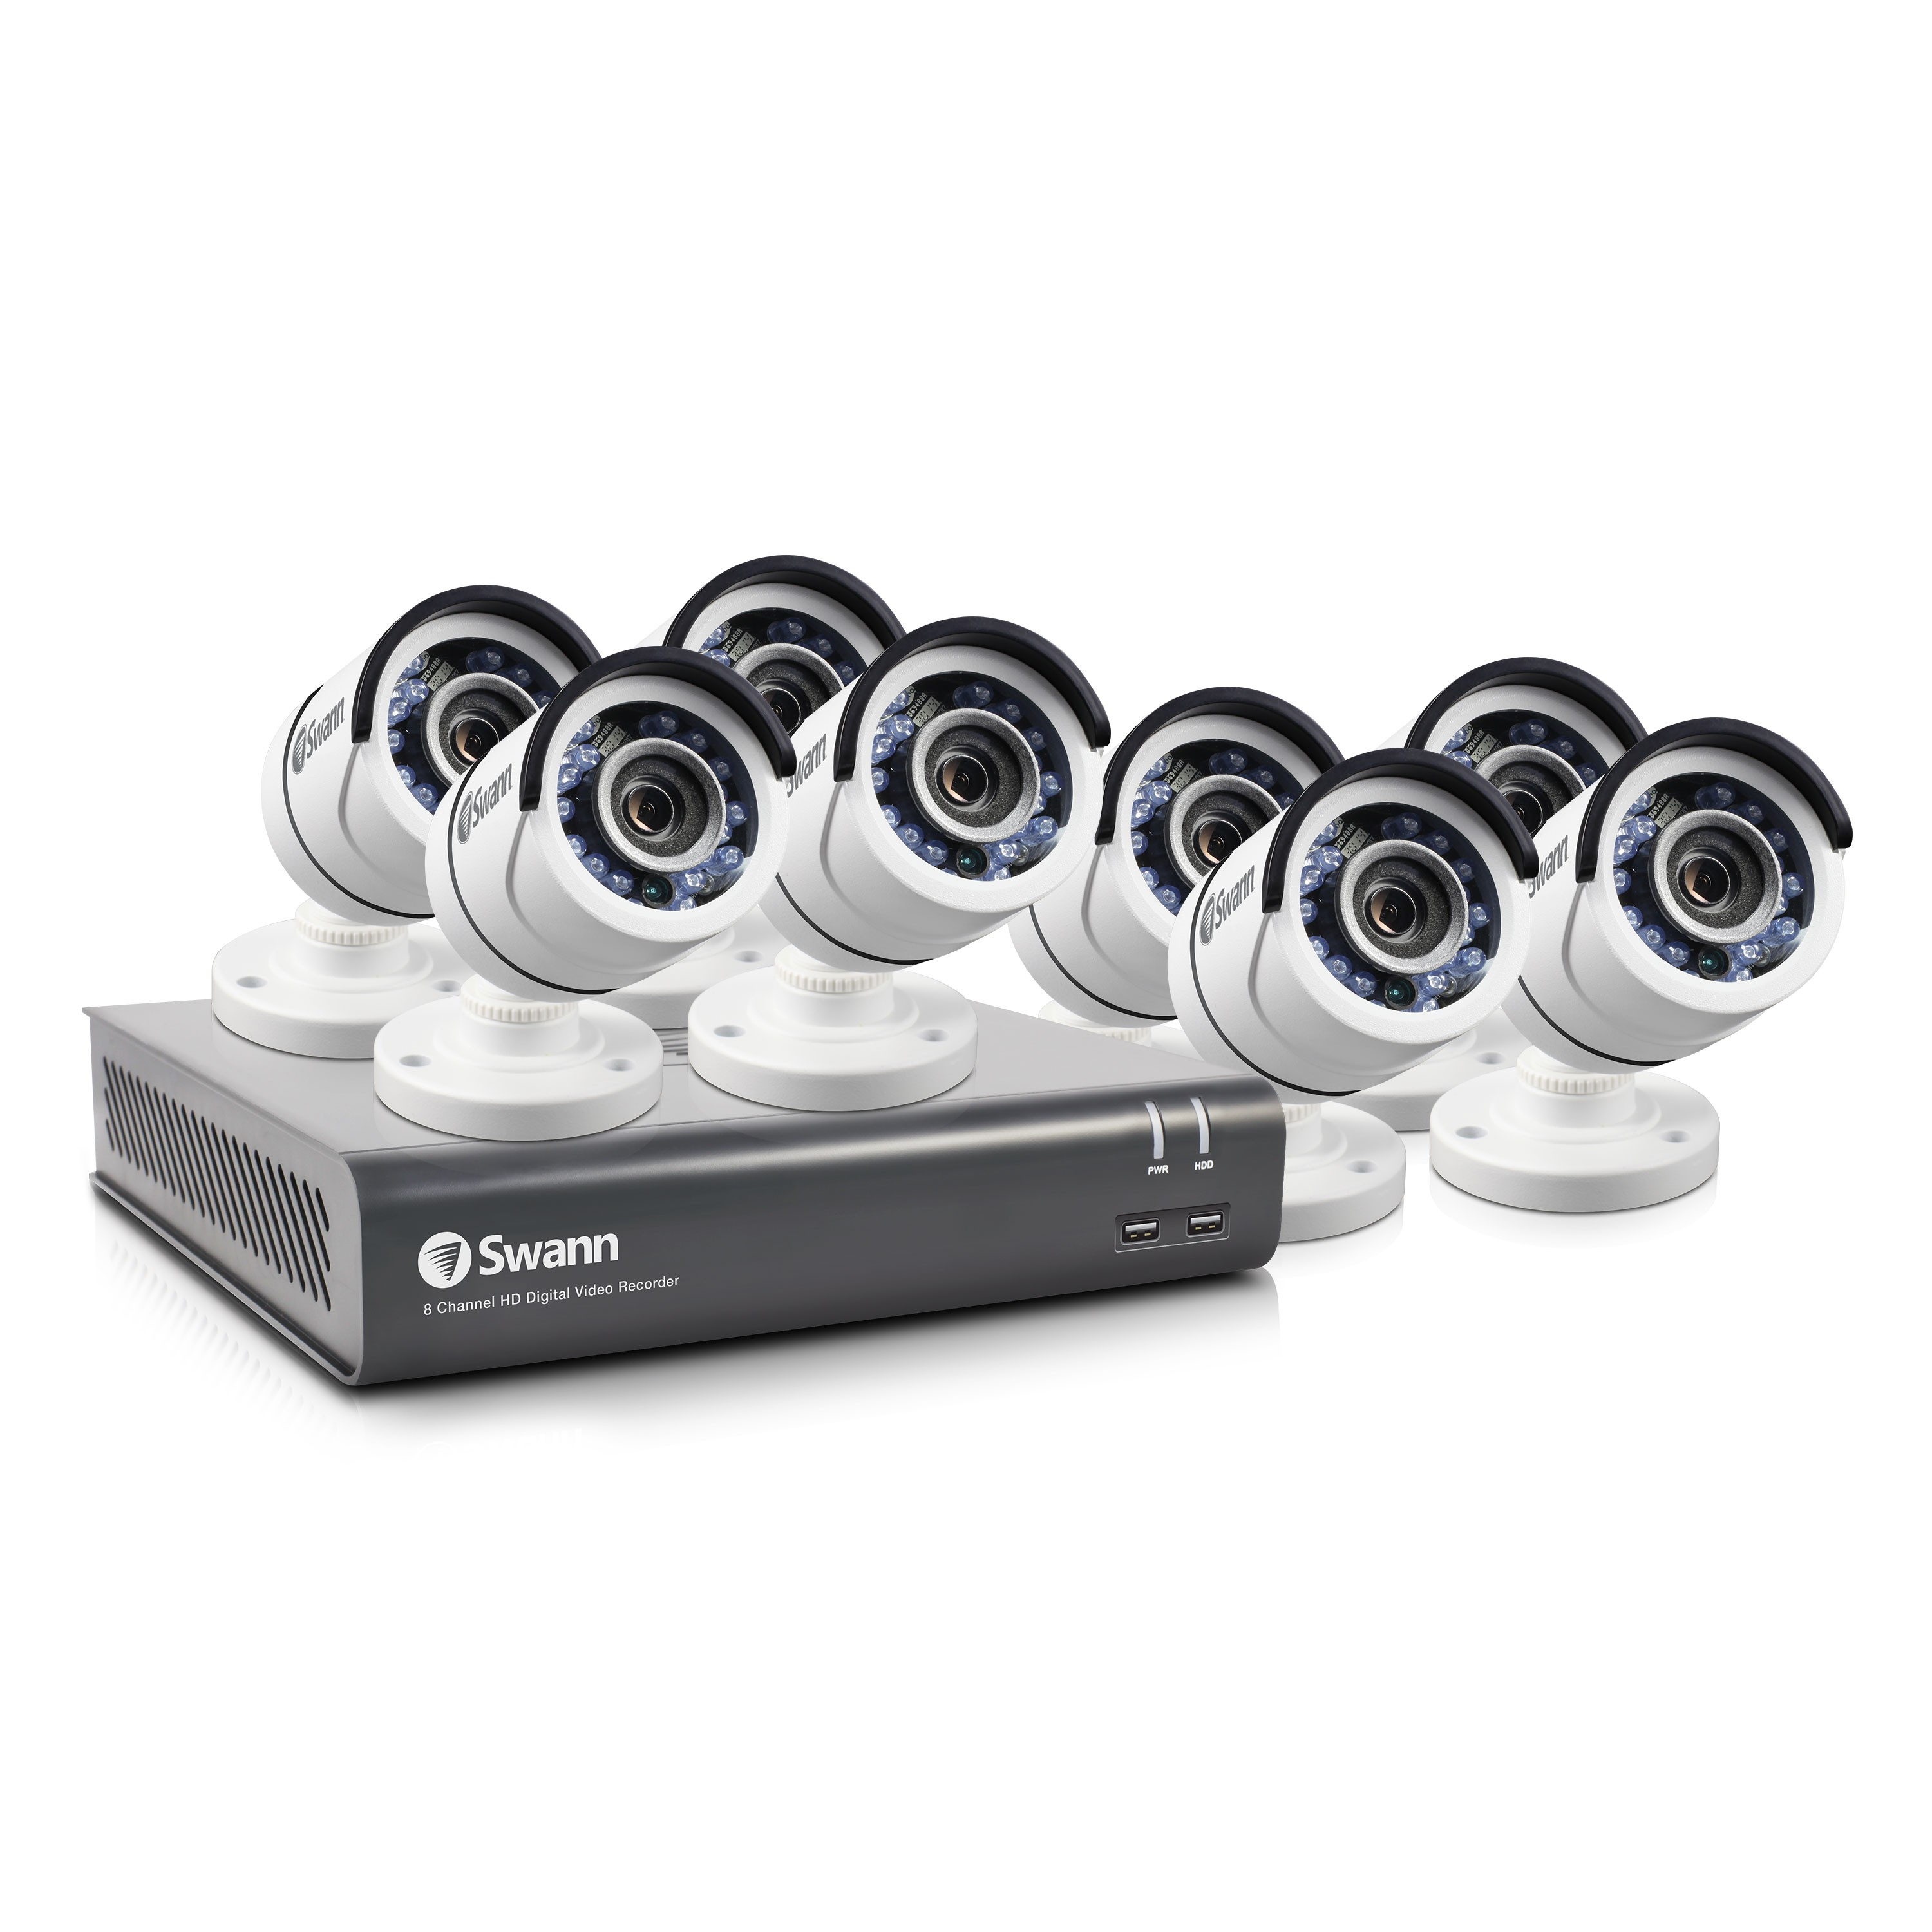 SWDVK-845758T Swann 8 Channel Security System: 1080p Full HD DVR-4575 with 2TB HDD & 8 x 1080p PRO-T853 Bullet Cameras -